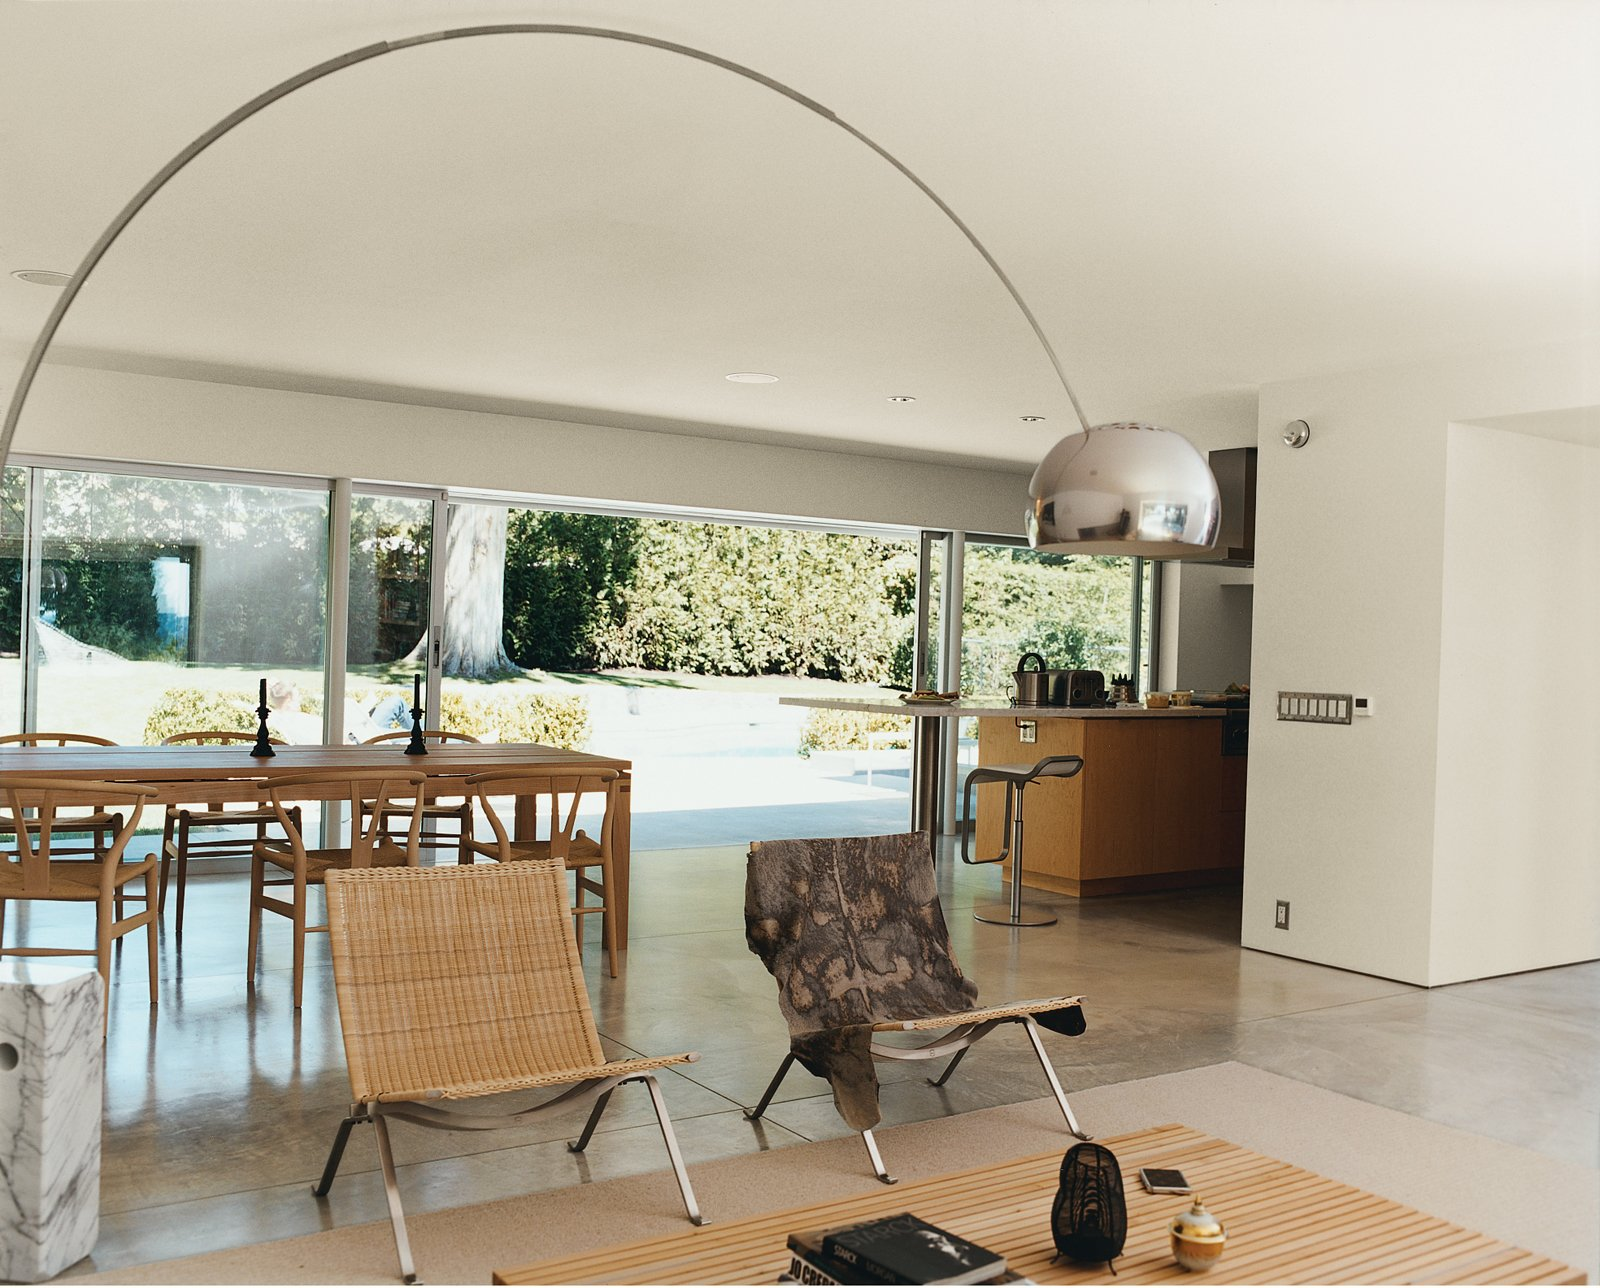 Dining Room, Chair, Table, Floor Lighting, and Concrete Floor A 14-foot-wide opening at the rear of the house contributes, along with the concrete flooring, to an almost seamless transition from indoors to the patio. A spate of mid-century furnishings includes chairs by Hans Wegner and Poul Kjærholm and an Achille Castiglioni Arco lamp.  Photo 2 of 13 in On the Level